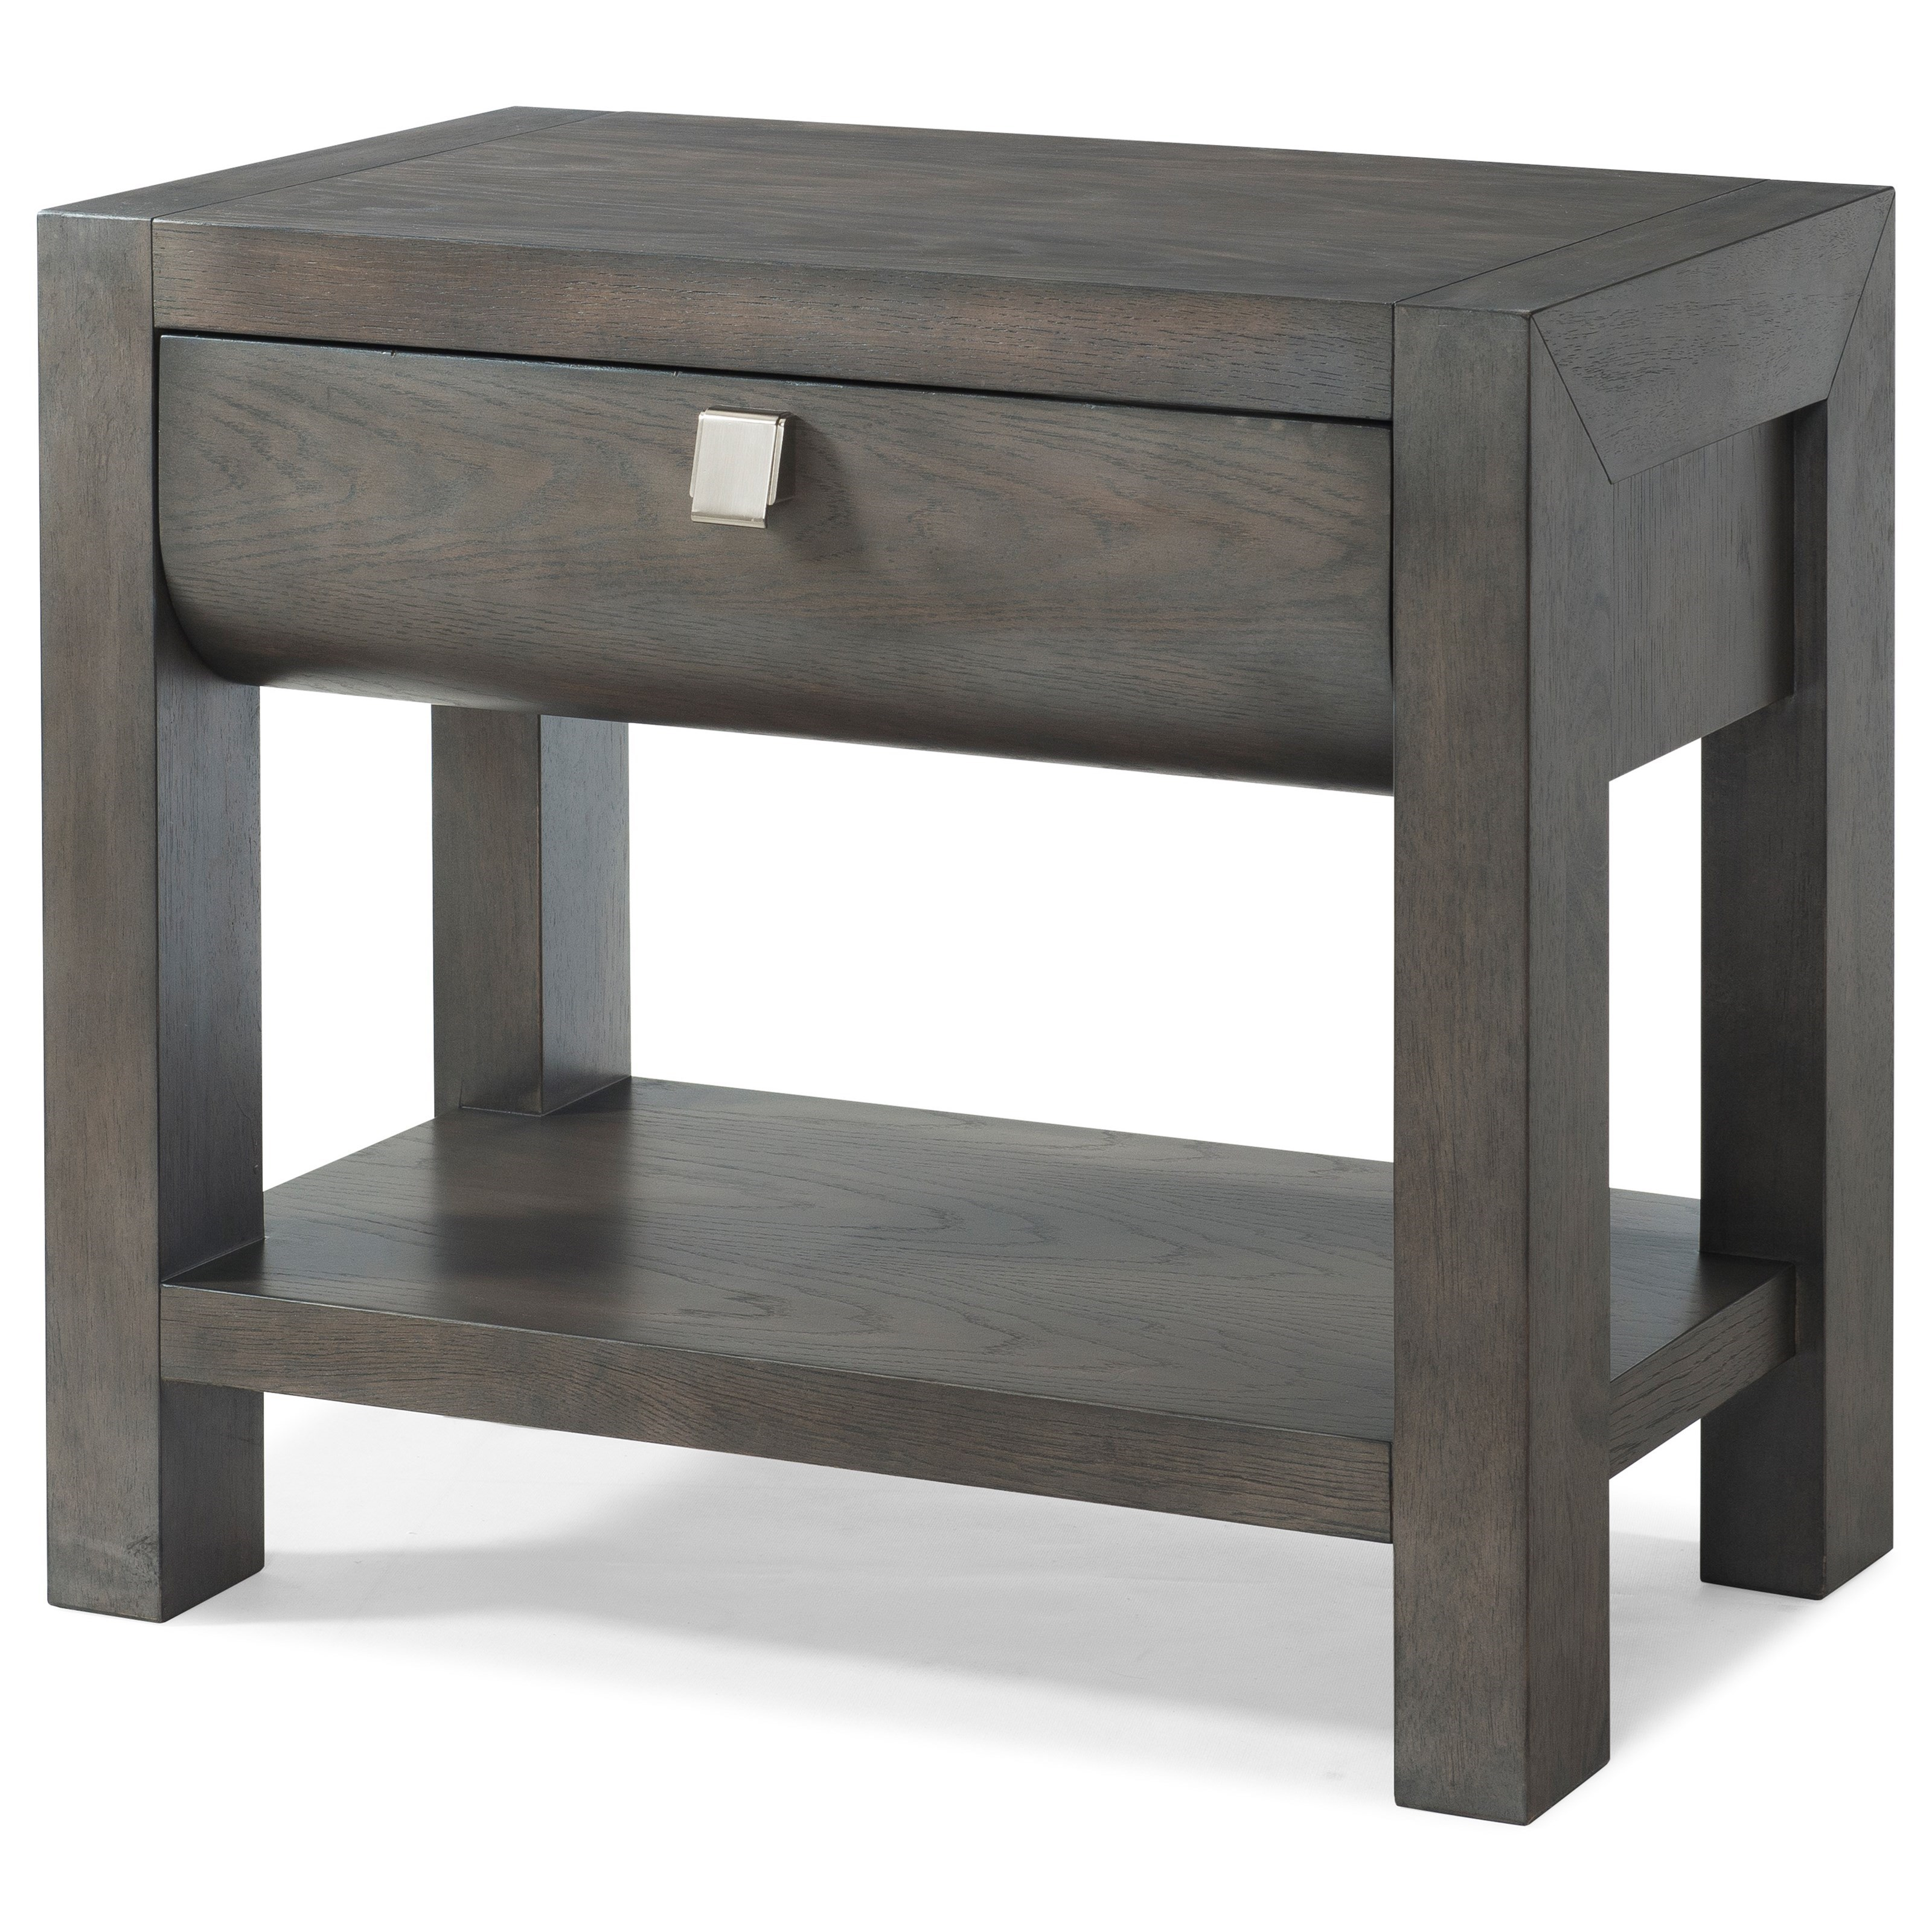 "Trisha Yearwood Home Collection by Klaussner Music City ""Nightengale"" One Drawer Nightstand - Item Number: 925-670 NSTD"